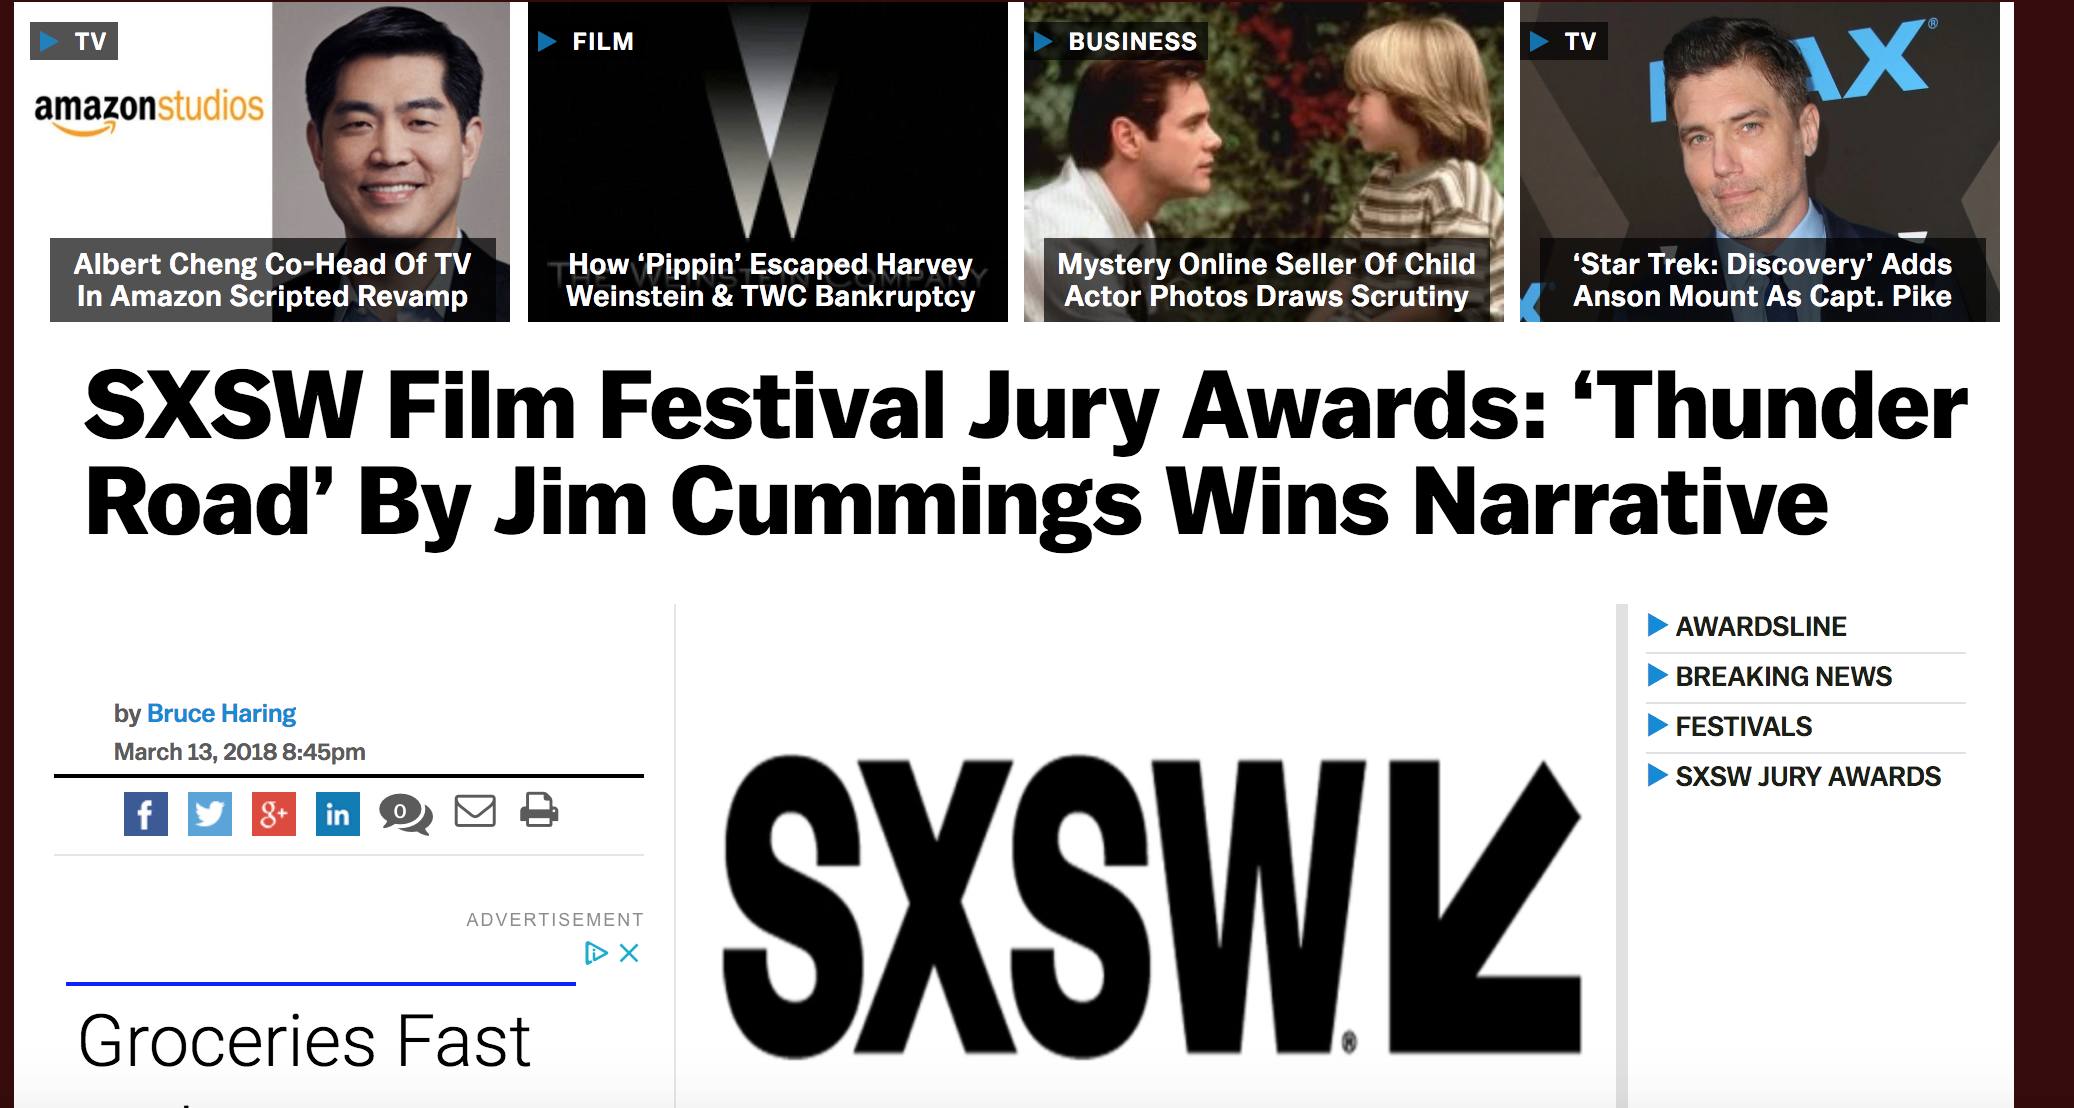 SXSW Film Festival Jury Awards